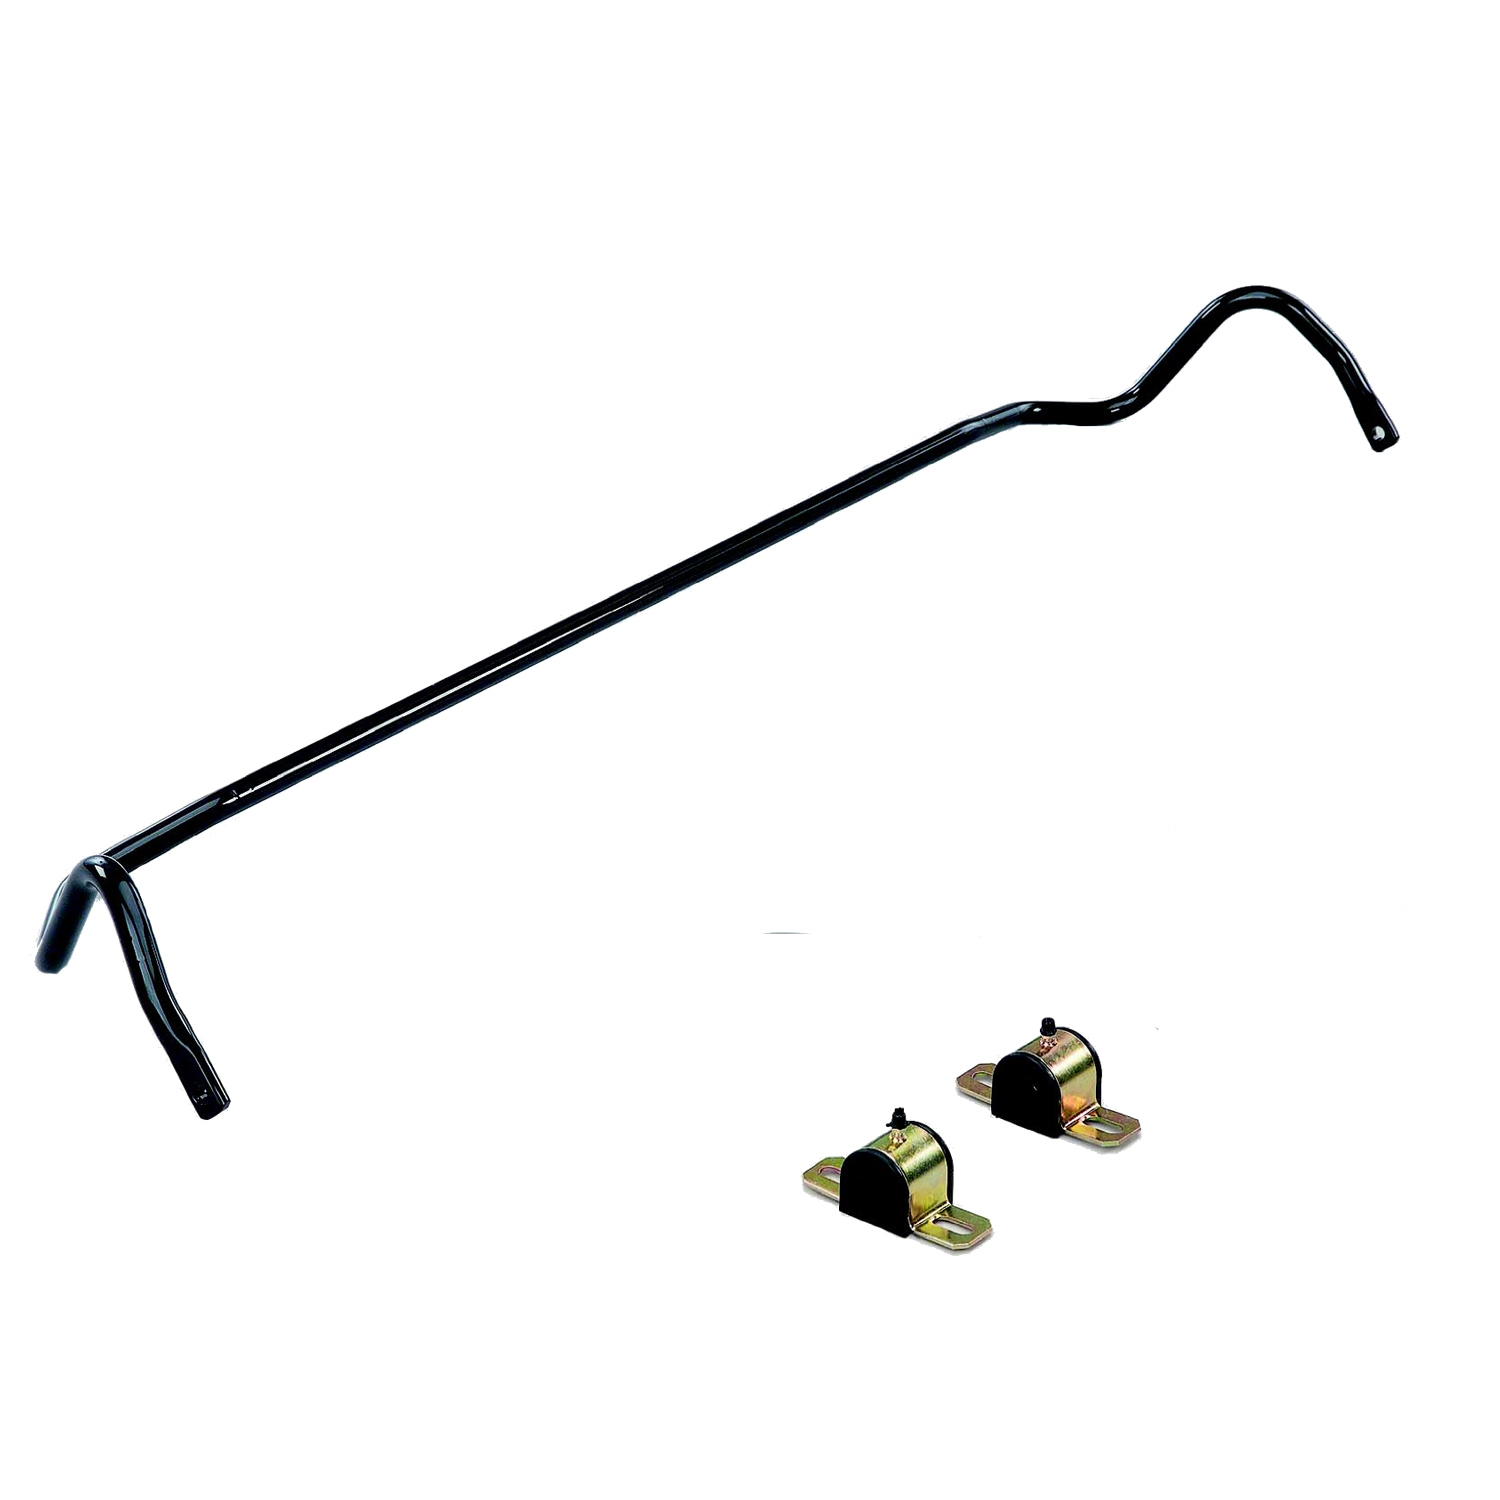 2013+ Dodge Challenger RT/V6 Hotchkis Rear Sport Sway Bar Set